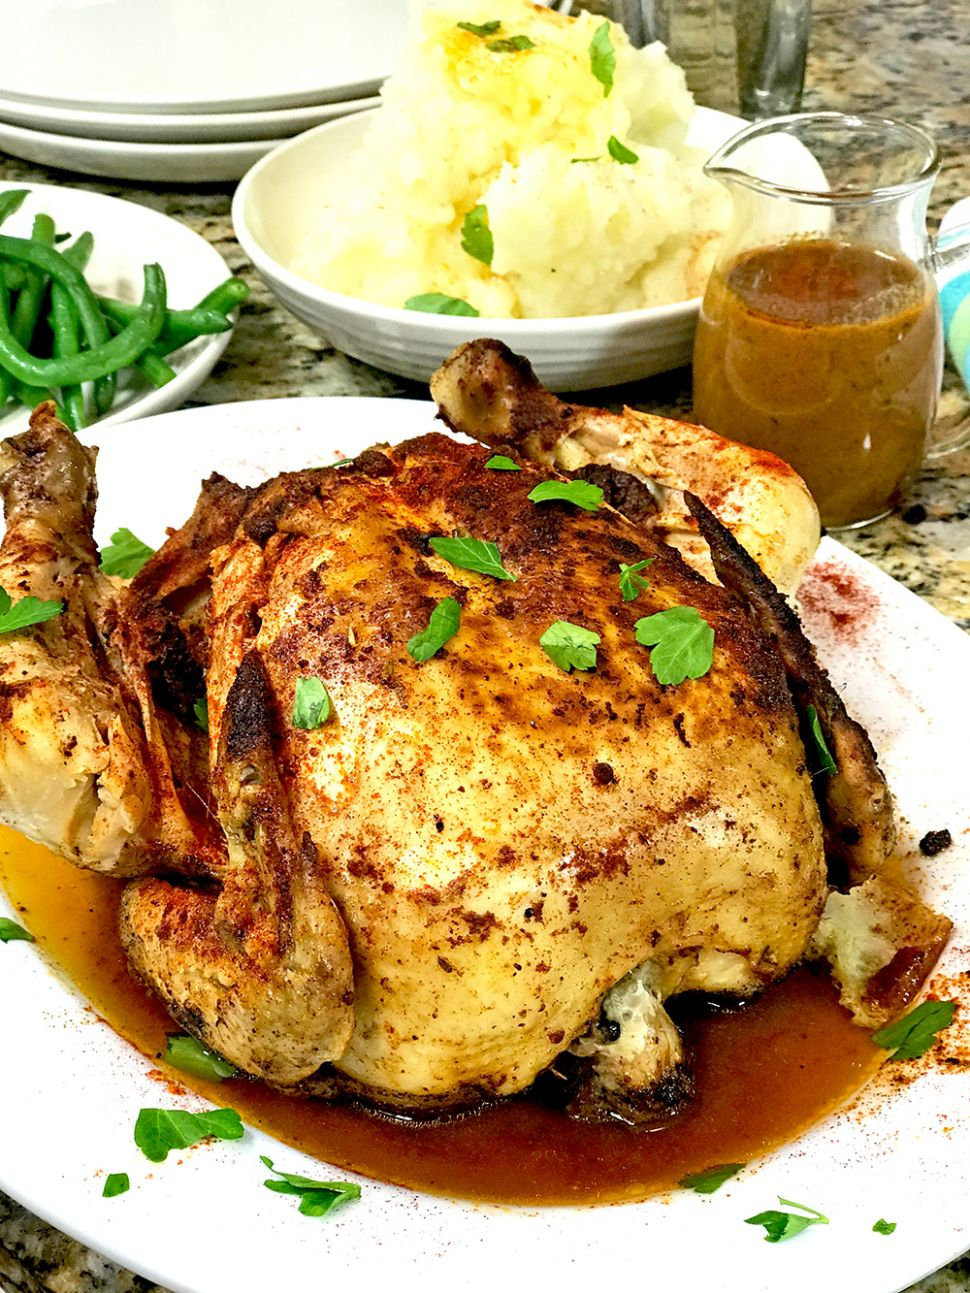 Whole Chicken Pressure Cooker Recipe for The Instant Pot - Recipes Chicken In Pressure Cooker